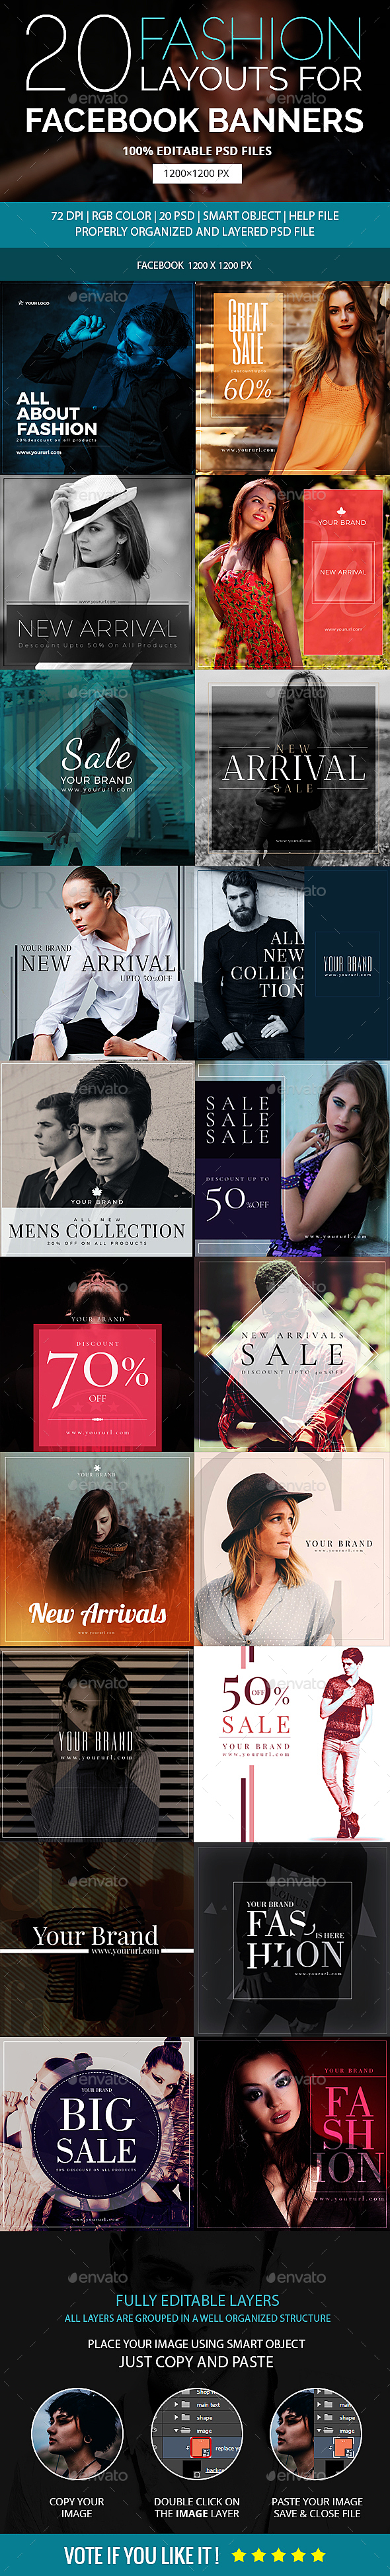 20 - Fashion Facebook Promotion Banners - Social Media Web Elements